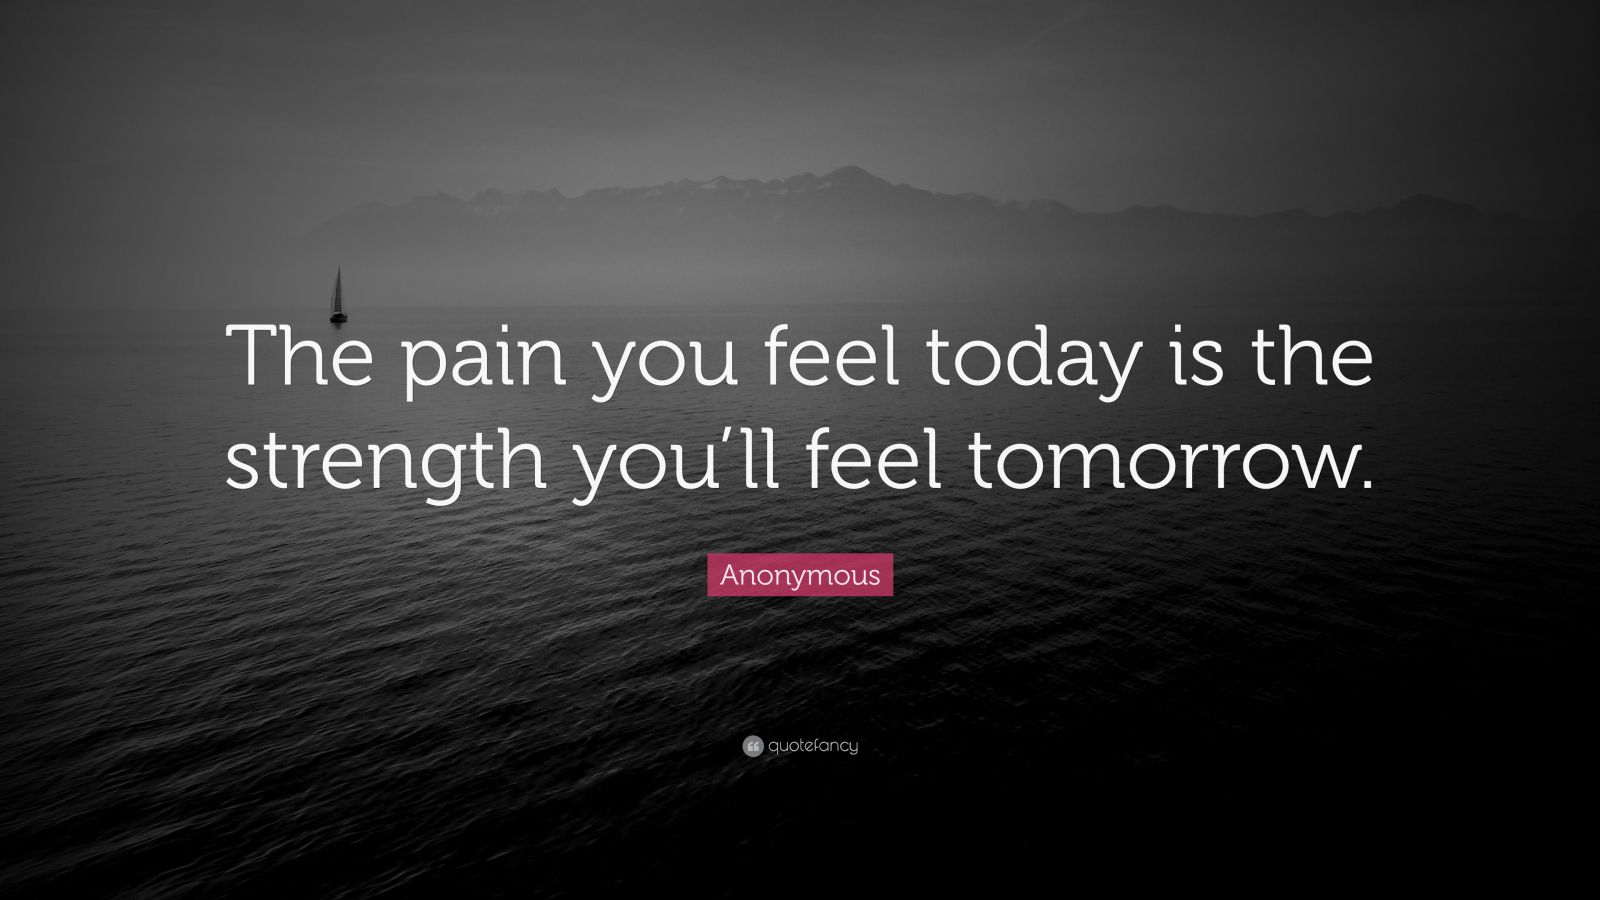 Motivational Bodybuilding Quotes The Pain You Feel Today Is Strength Youll